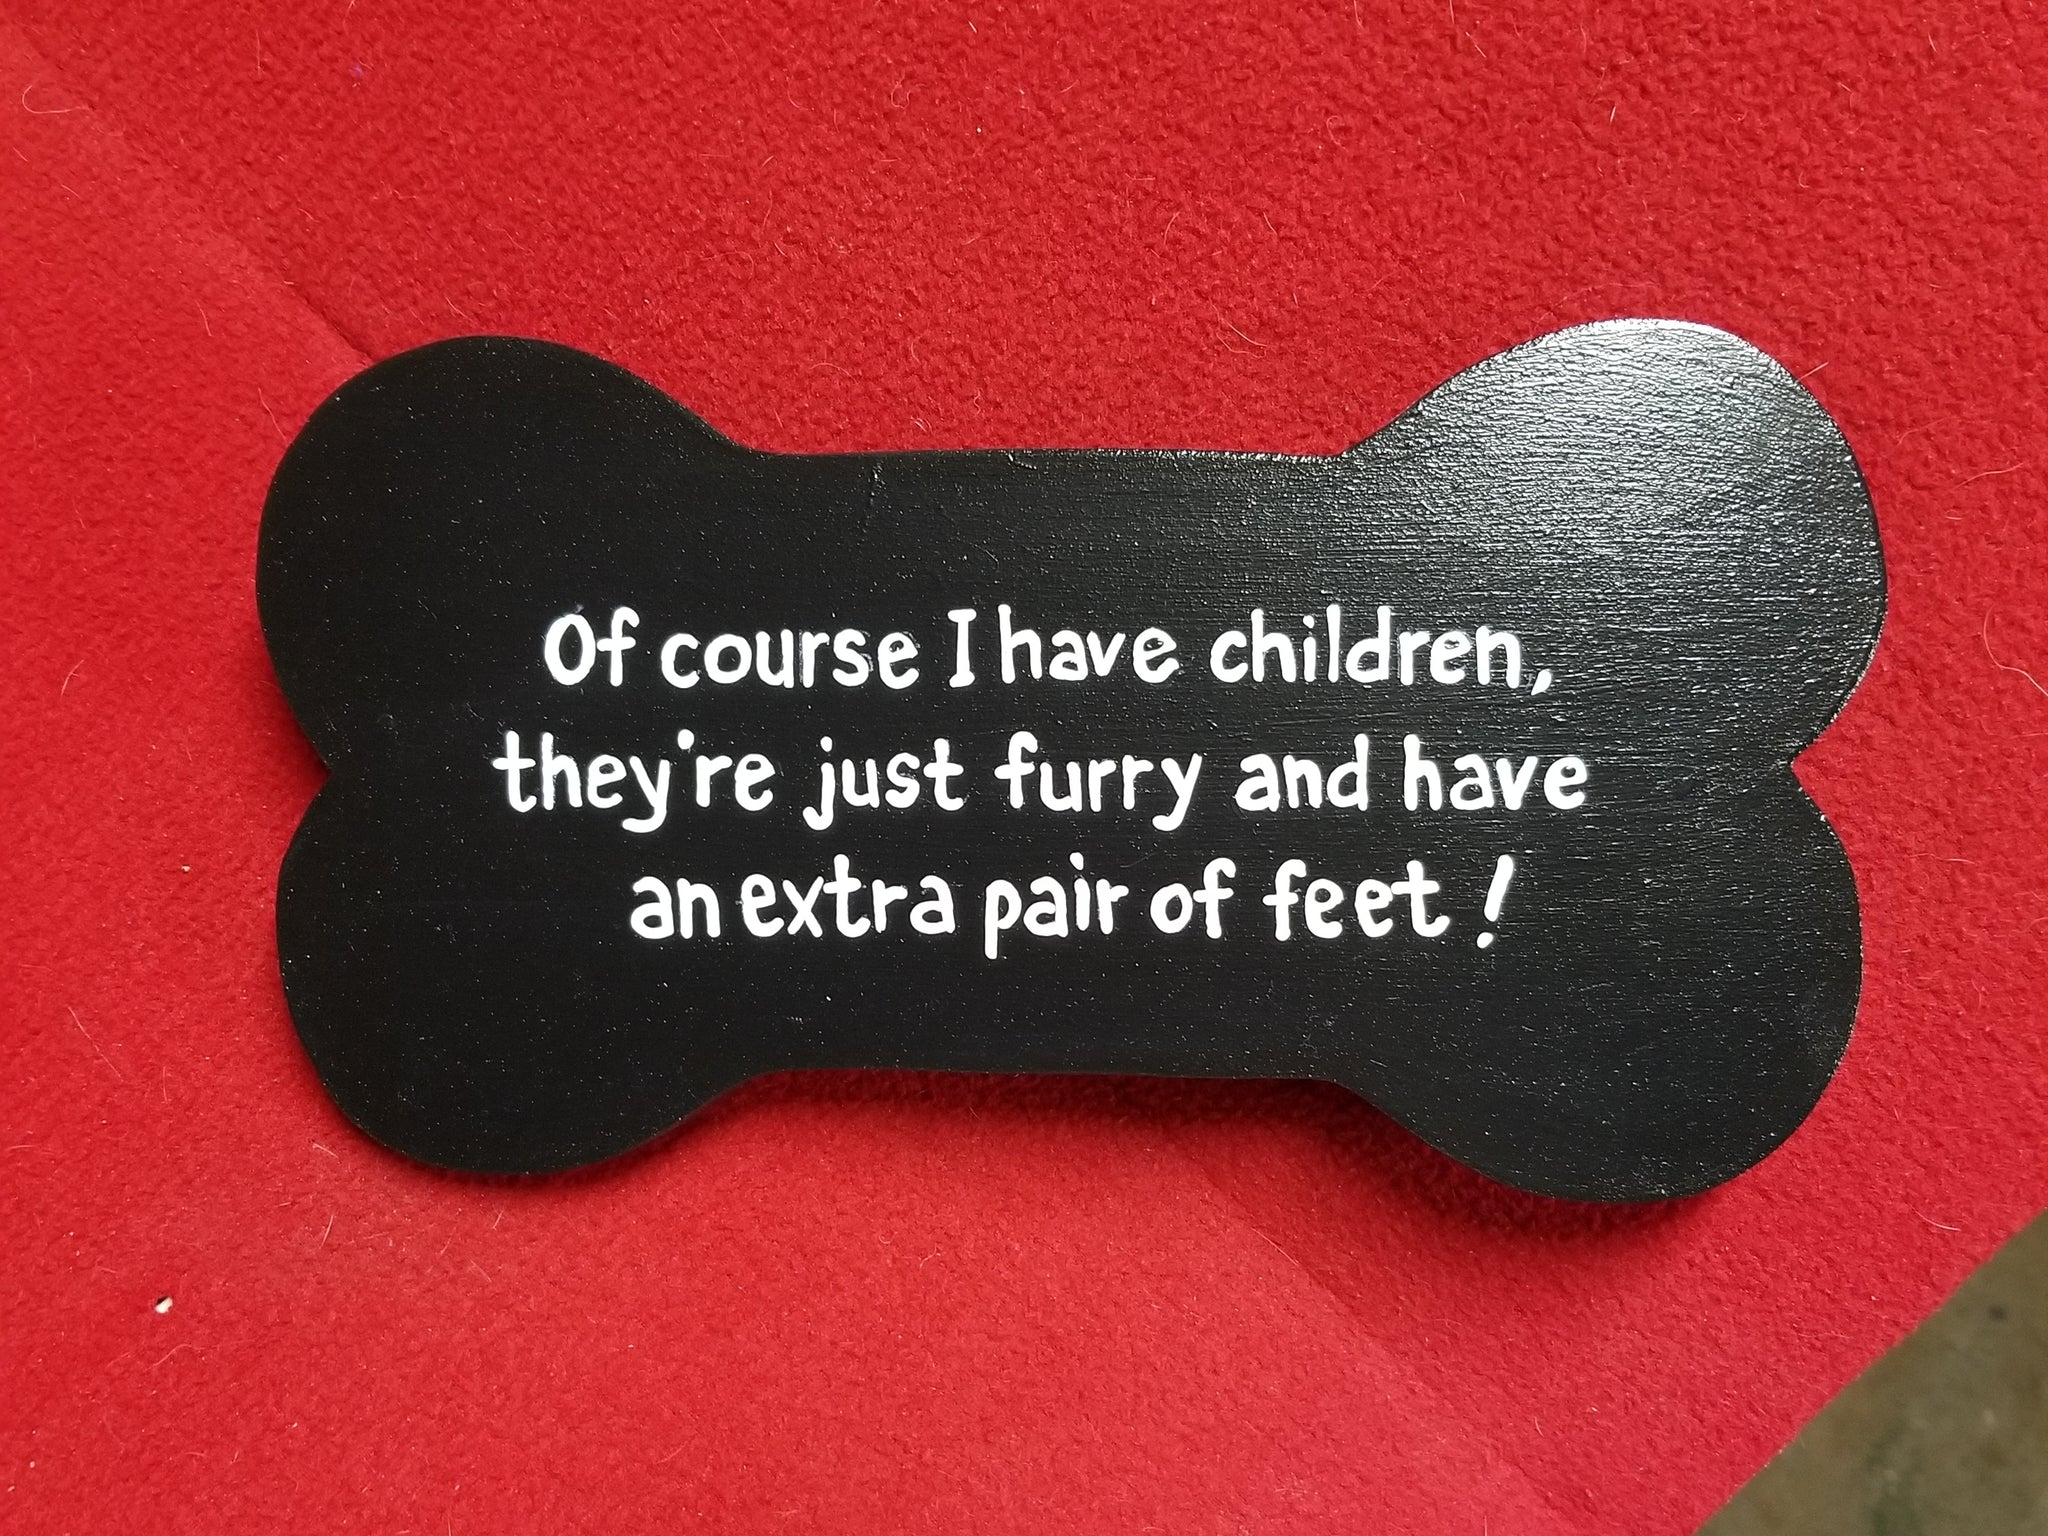 Of course I have children, they're just furry and have an extra pair of feet!